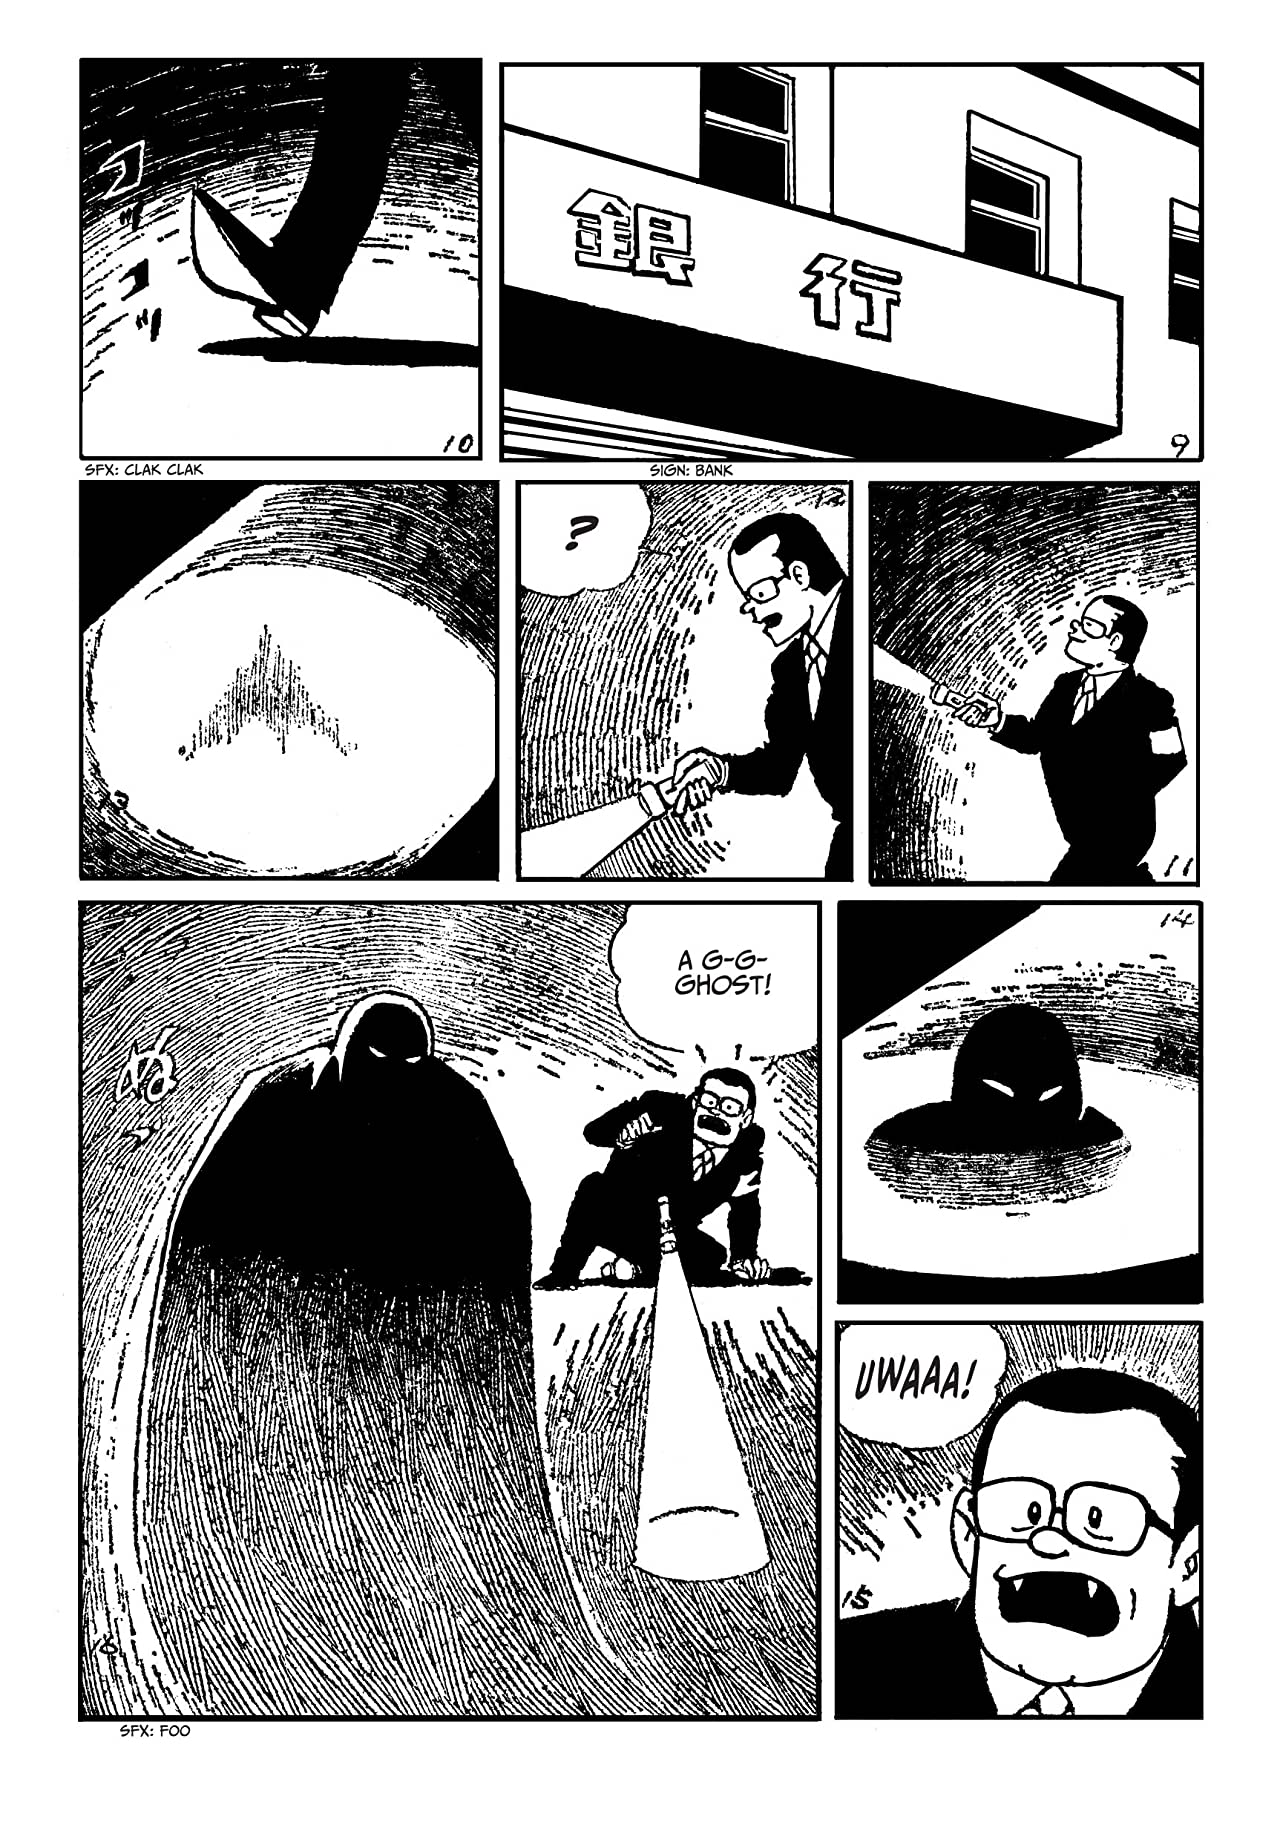 Batman: The Jiro Kuwata Batmanga #51